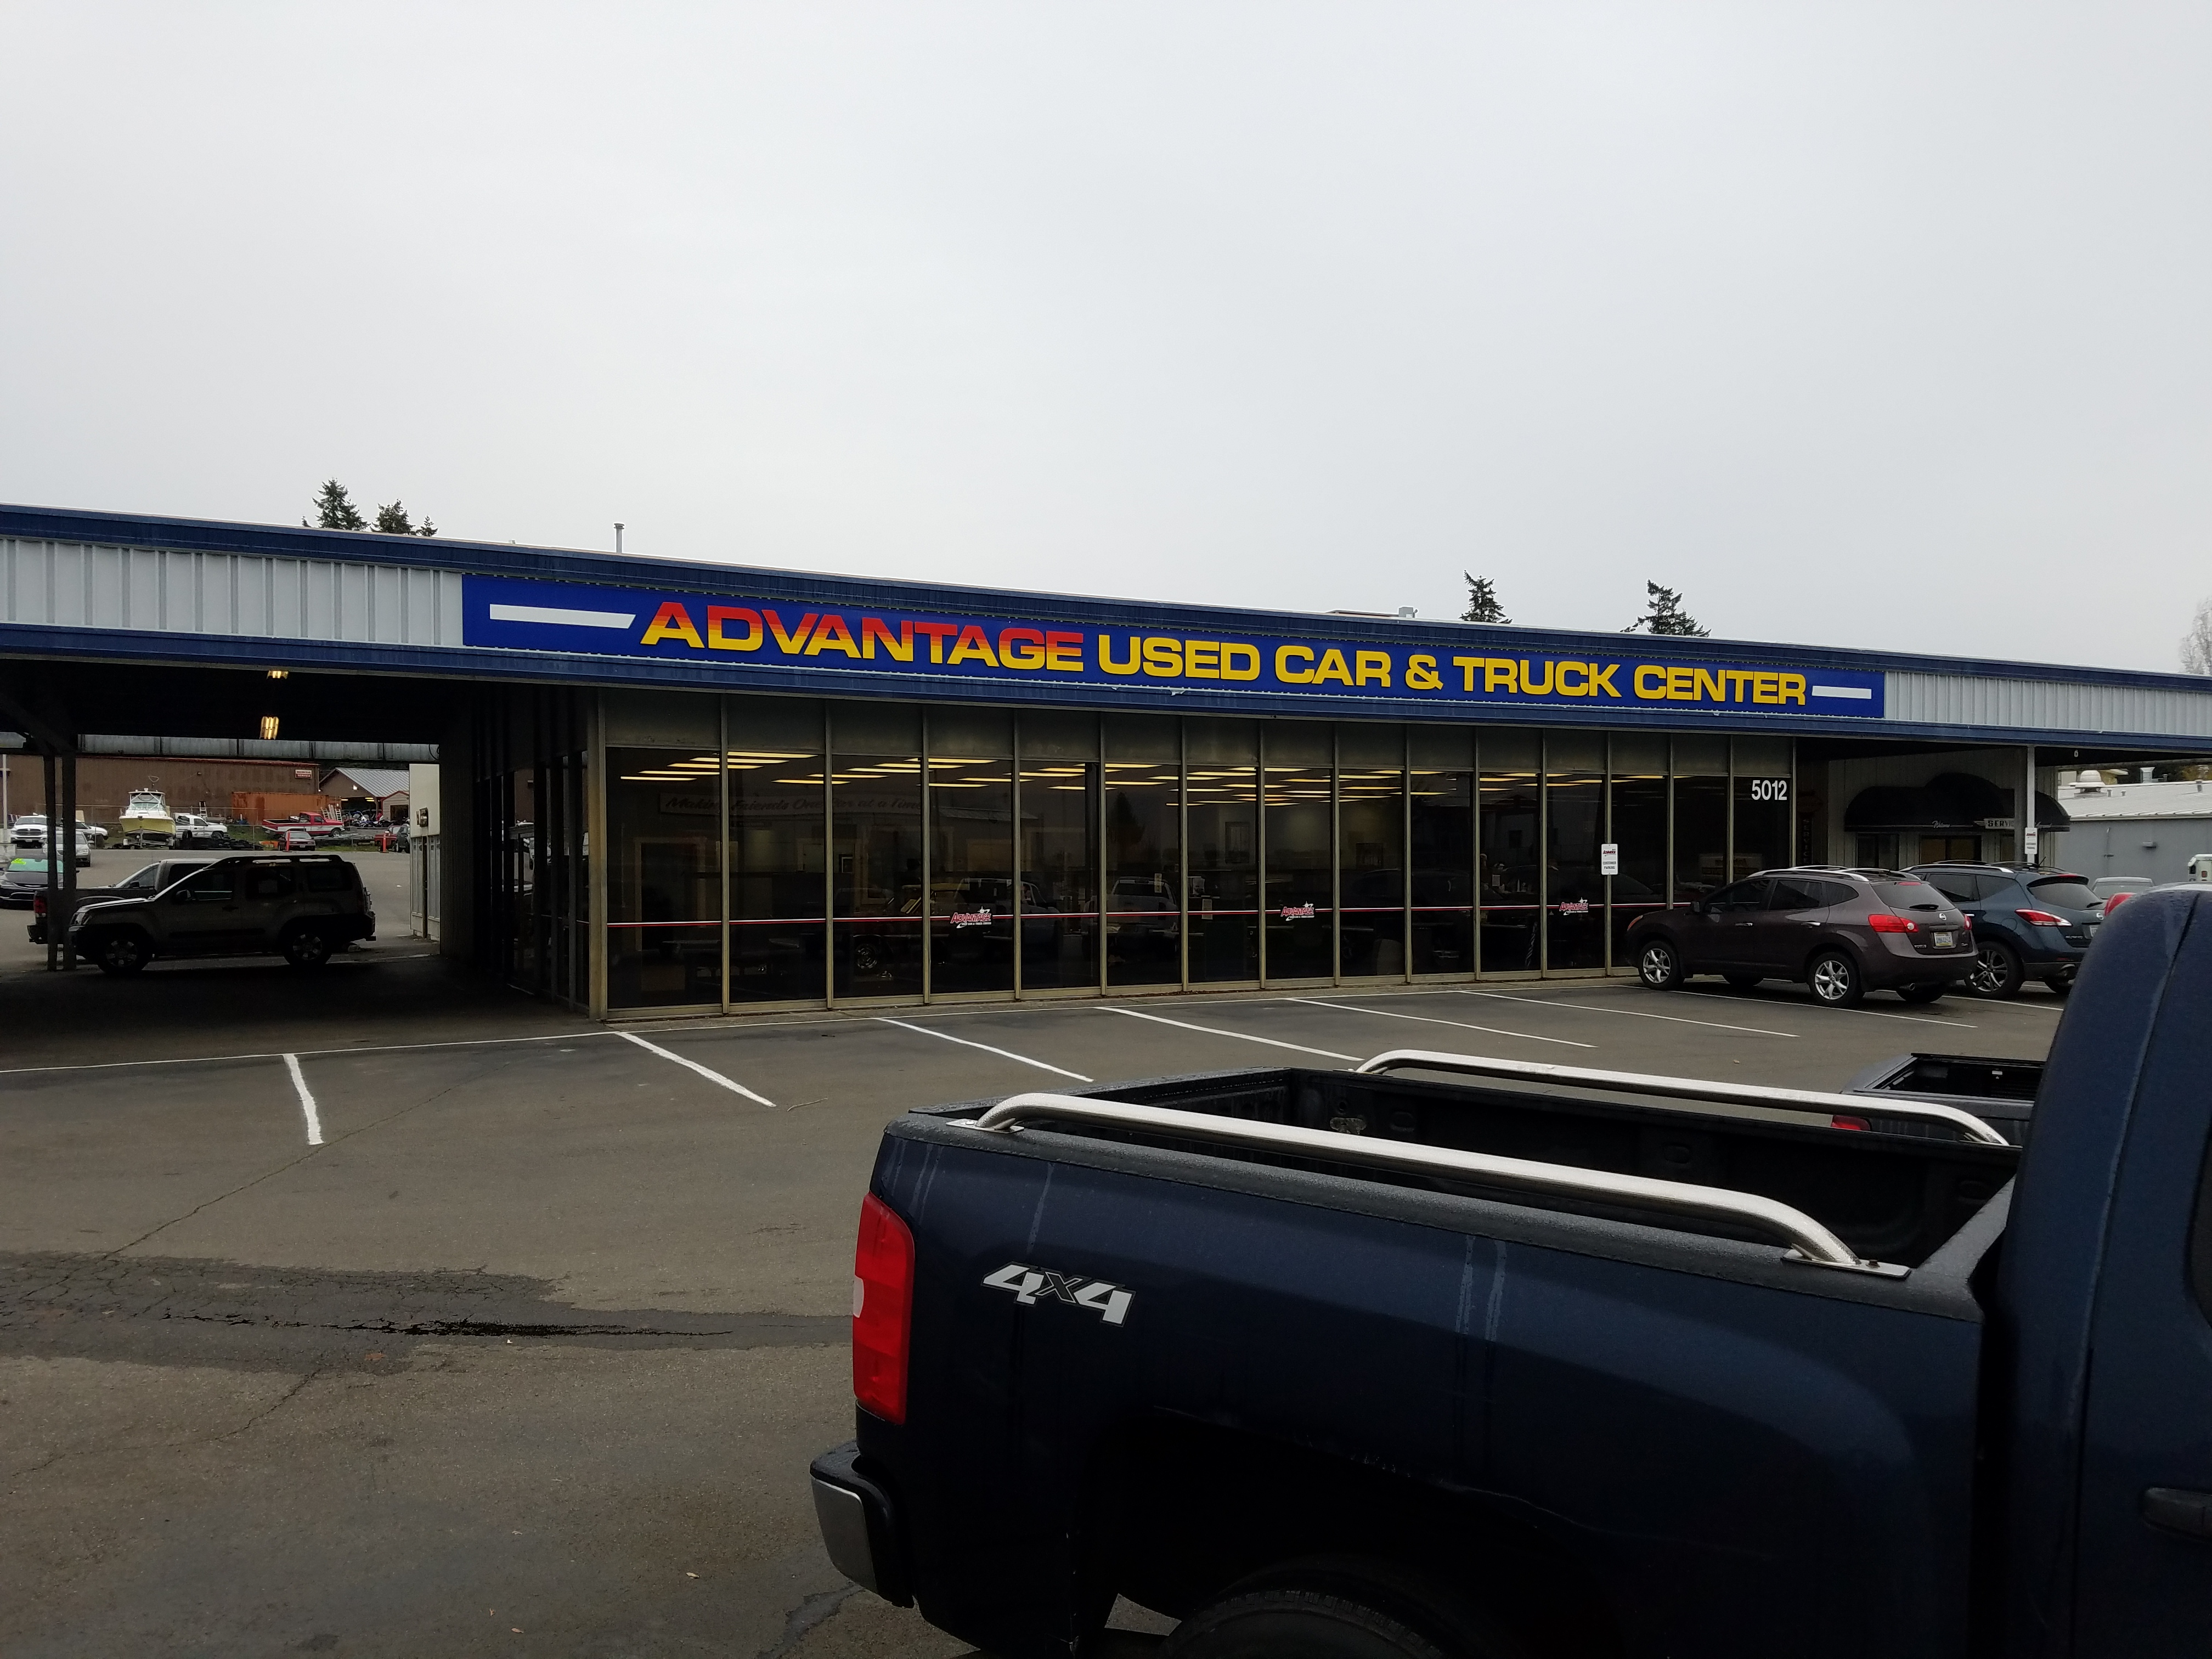 Advantage Used Car and Truck Center image 1